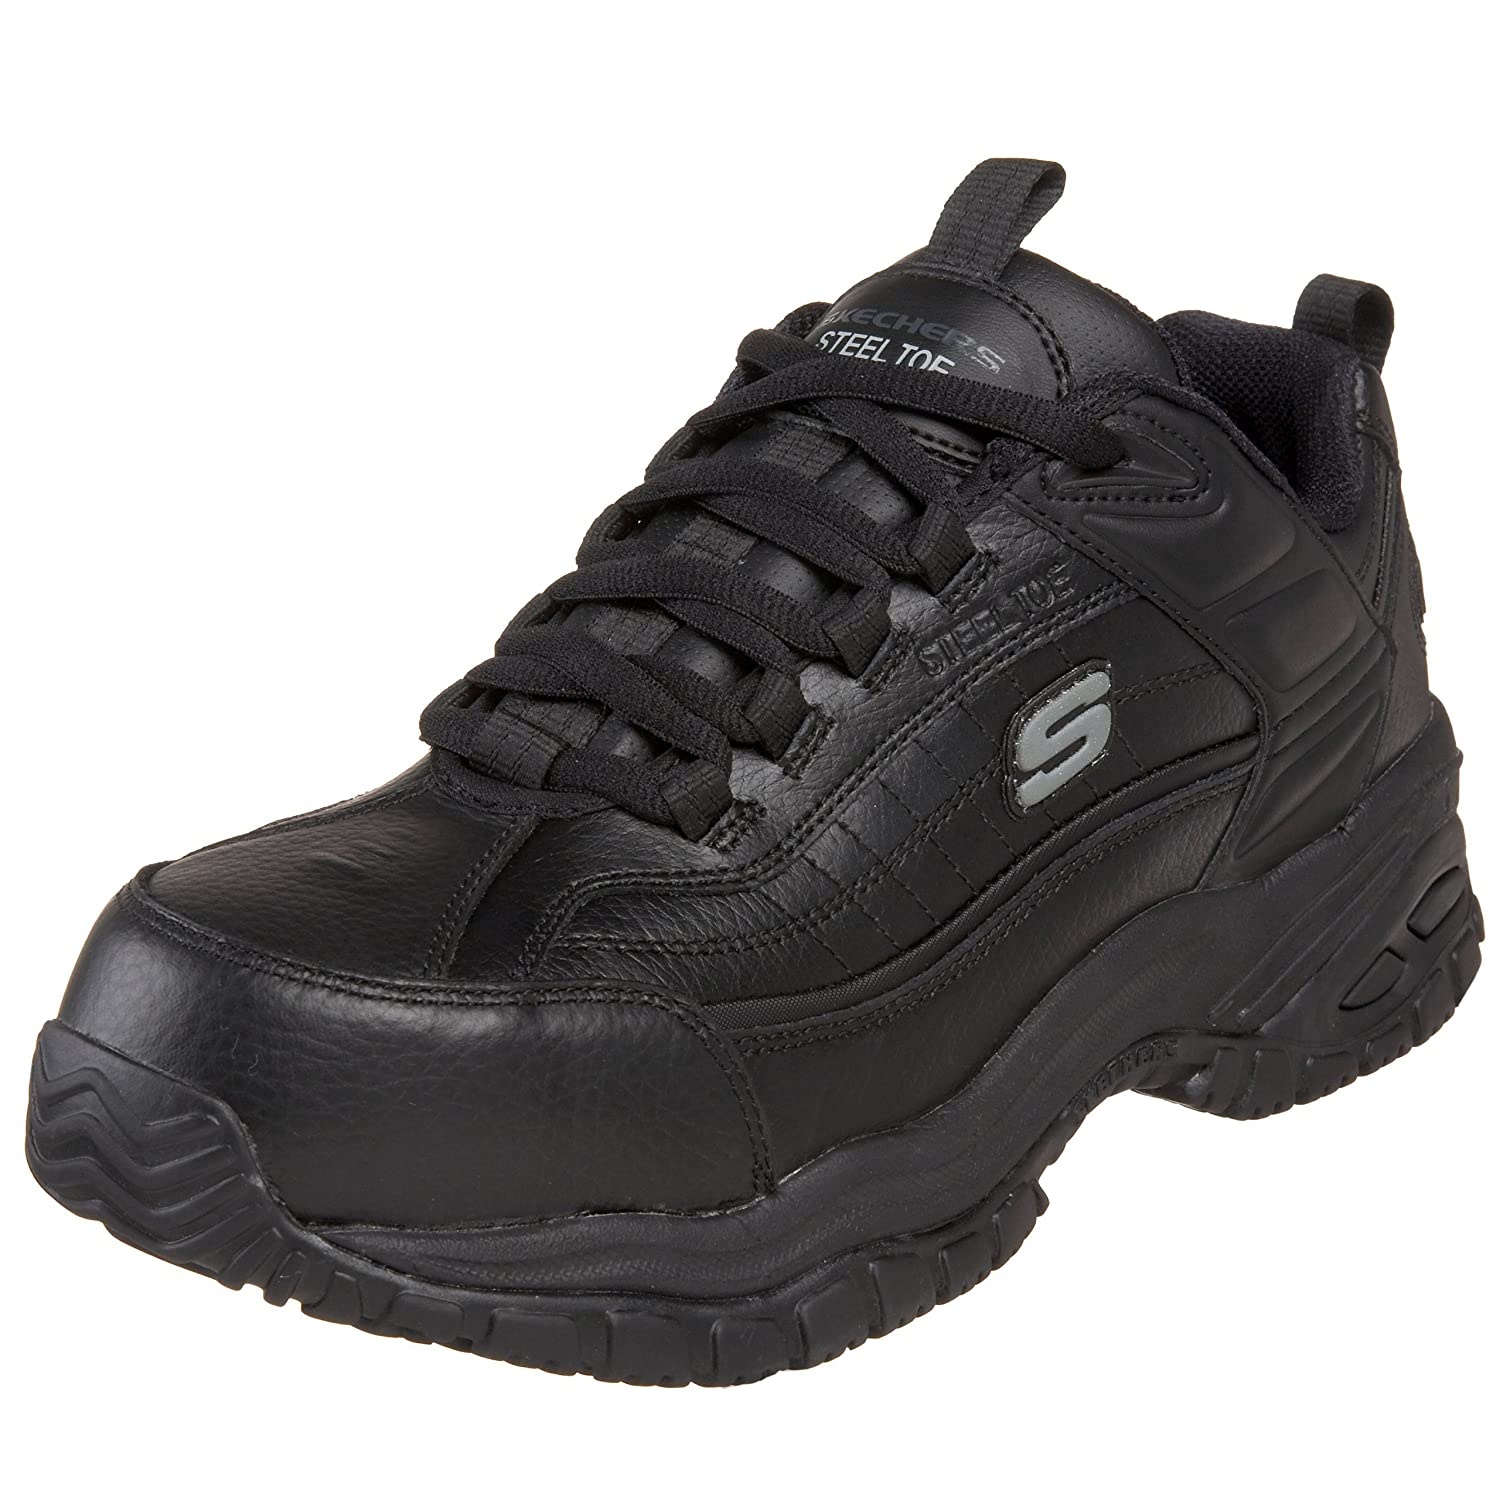 skechers for work men s soft stride steel toe work